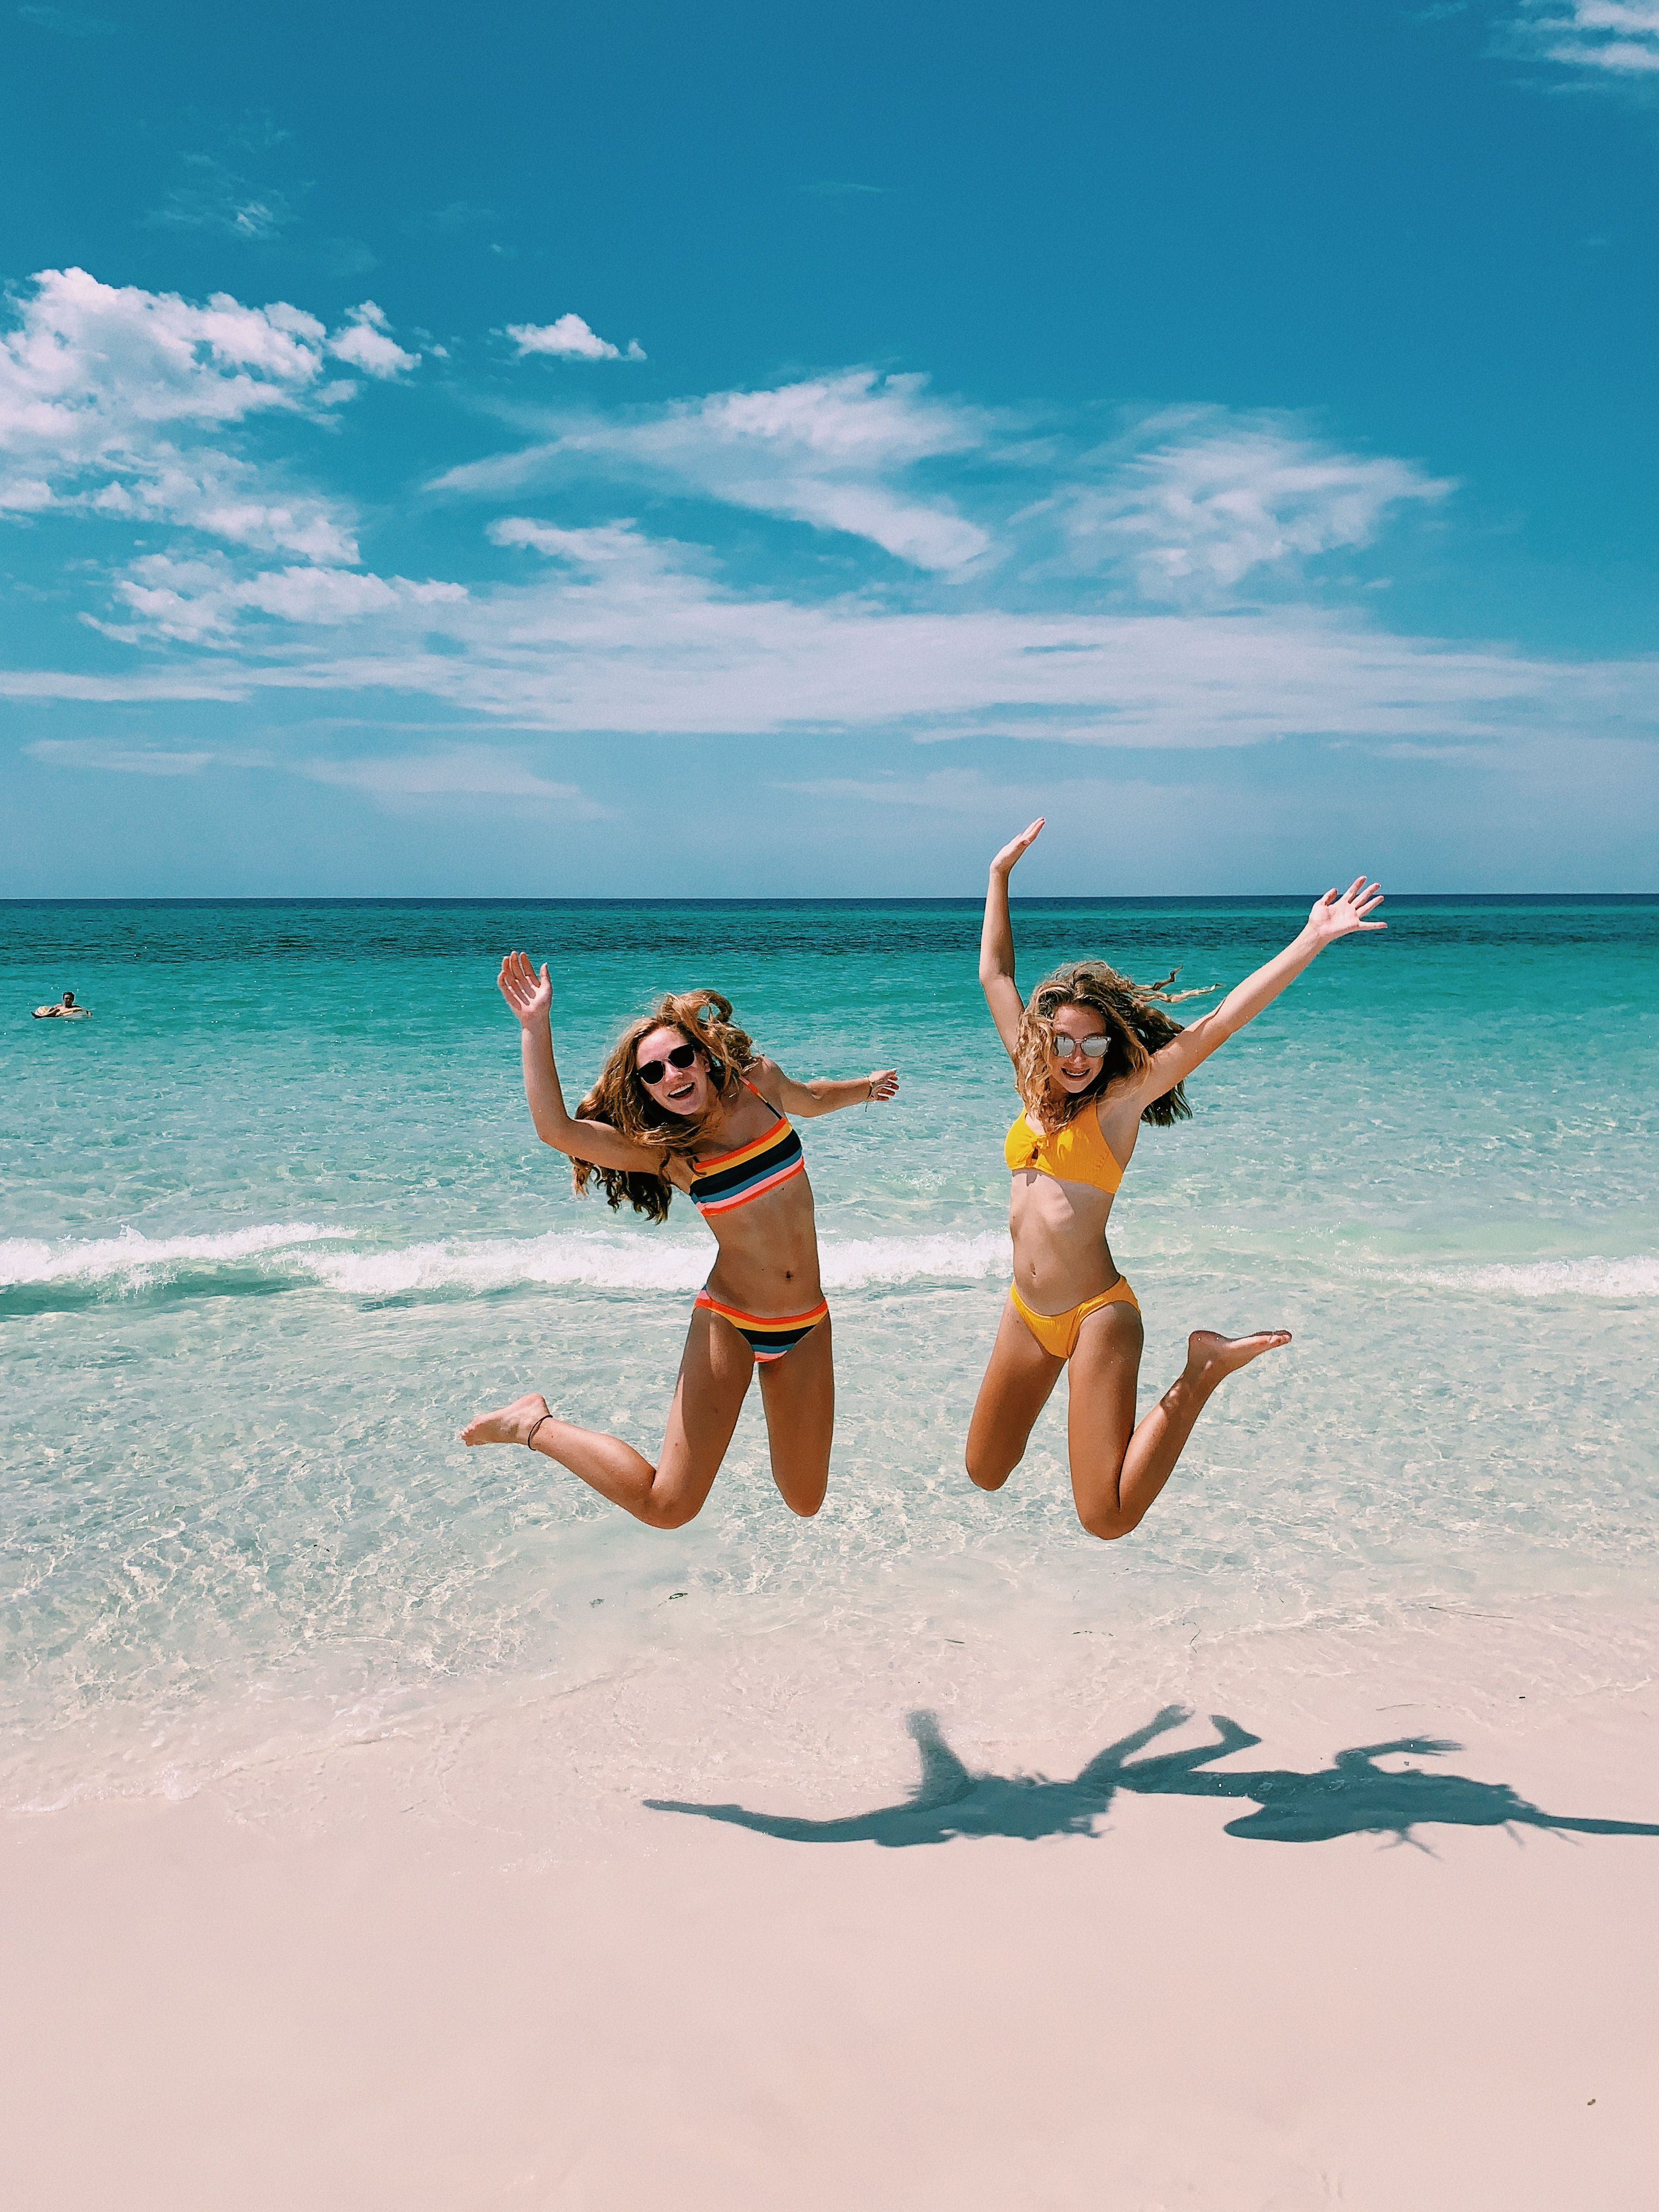 Pin On Photos For Beach With Bffs